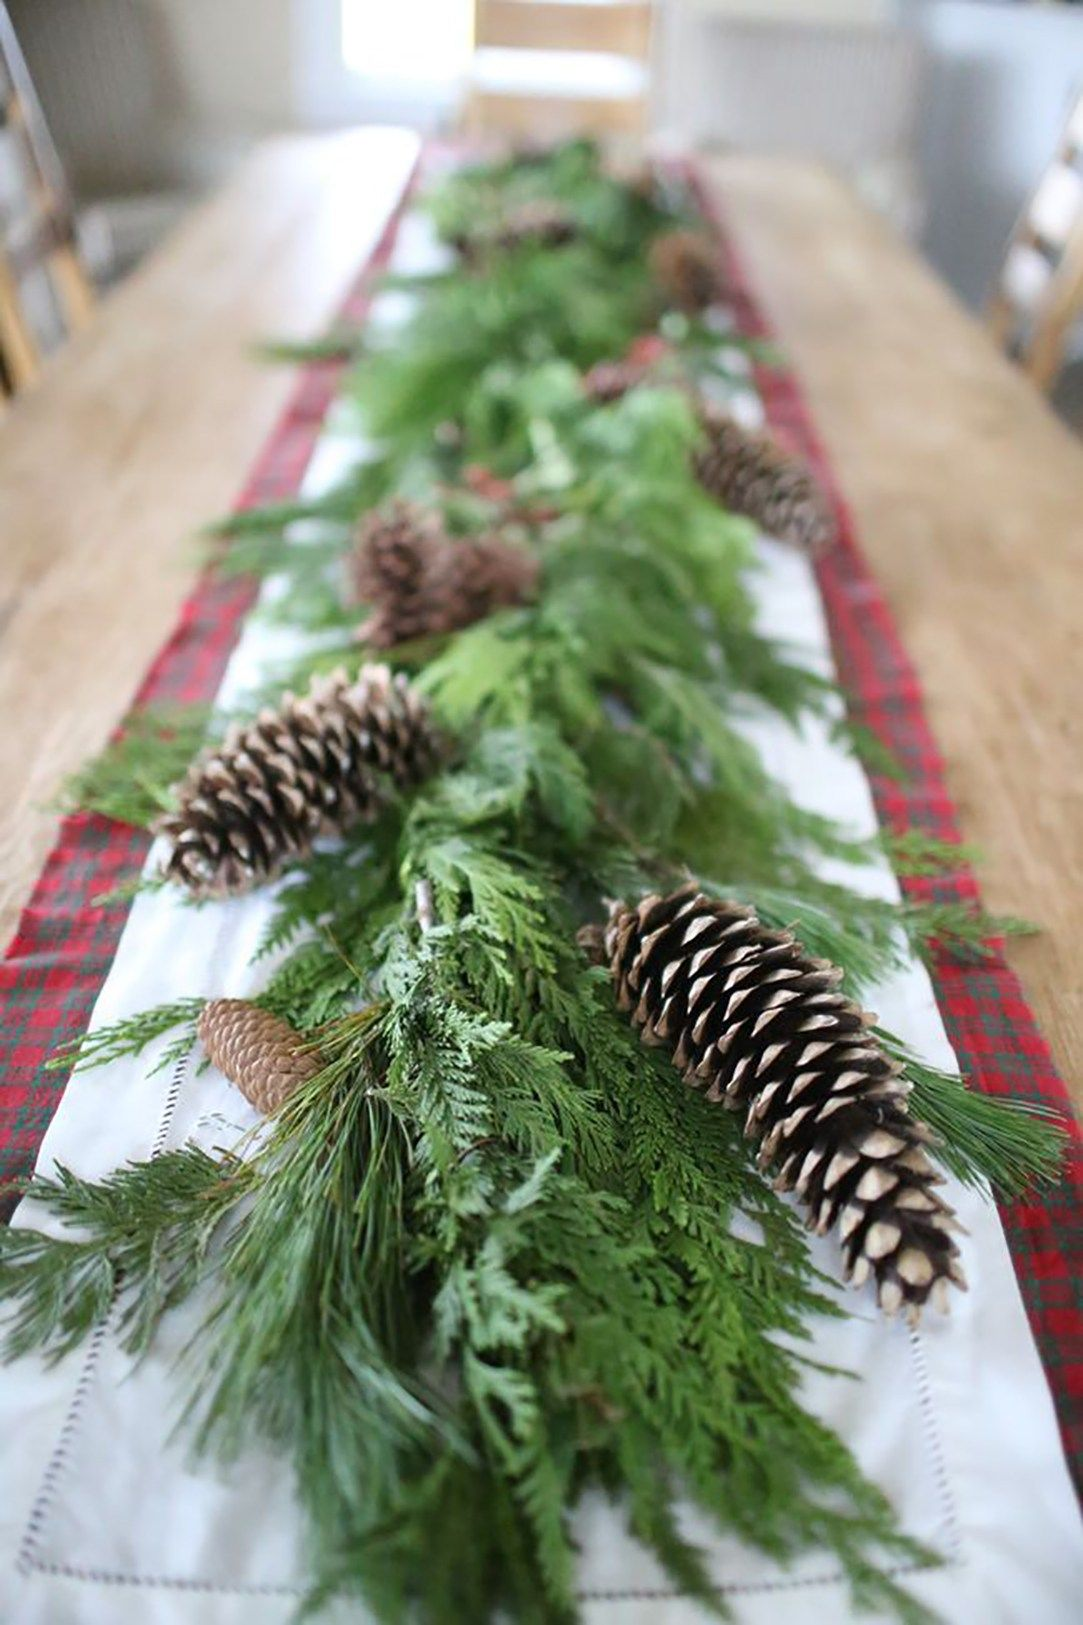 Keeping Things Simple With Pine Cones And Plenty Of Greenery Christmas Table Decorations Christmas Greenery Christmas Centerpieces